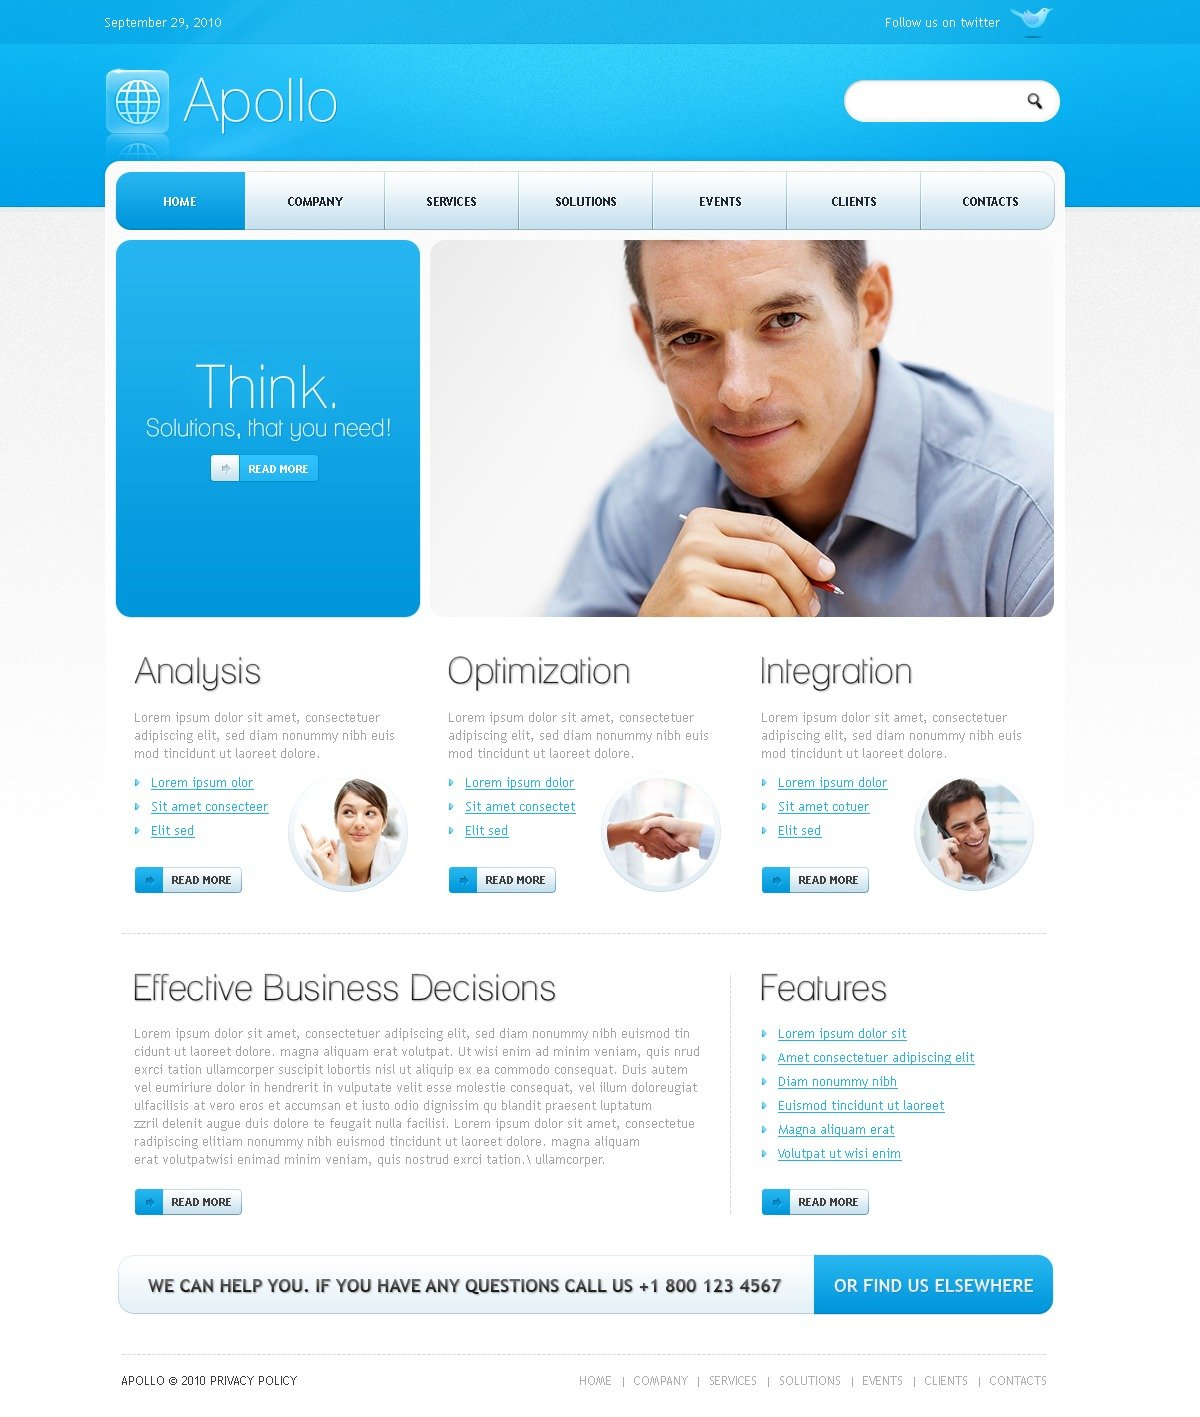 The Apollo Business Company PSD Design 54135, one of the best PSD templates of its kind (business, most popular, wide), also known as apollo business company PSD template, corporate solutions PSD template, innovations PSD template, contacts PSD template, service PSD template, support PSD template, information dealer PSD template, stocks PSD template, team PSD template, success PSD template, money PSD template, marketing PSD template, director PSD template, manager PSD template, analytics PSD template, planning PSD template, limited PSD template, office PSD template, sales and related with apollo business company, corporate solutions, innovations, contacts, service, support, information dealer, stocks, team, success, money, marketing, director, manager, analytics, planning, limited, office, sales, etc.